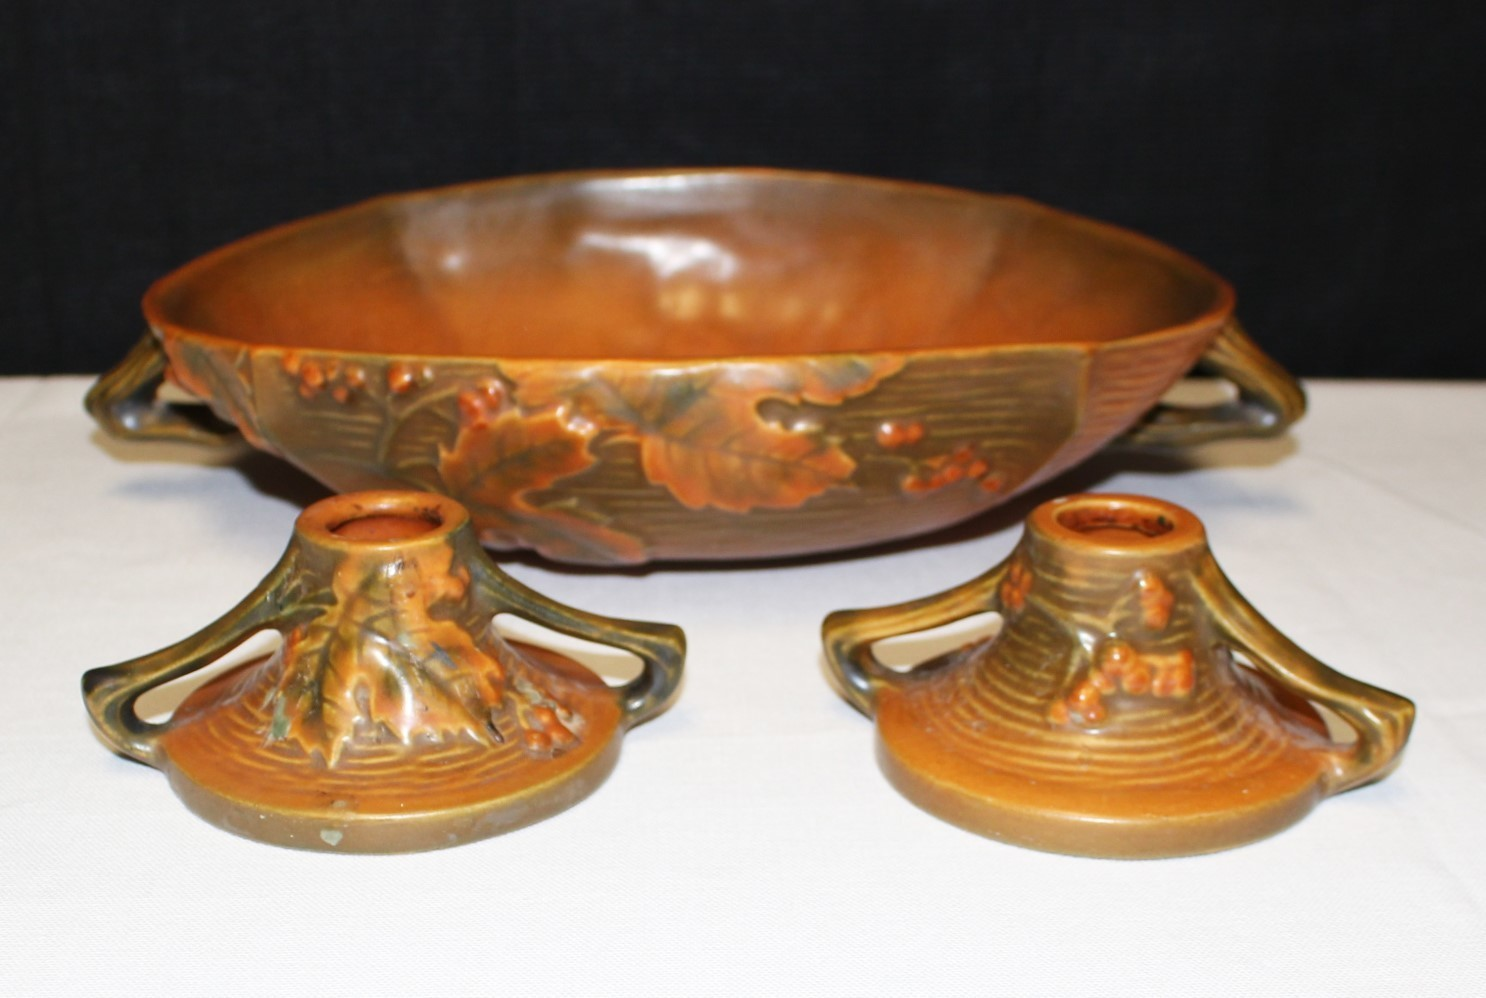 Roseville Pottery Bushberry Terra Cotta Console Bowl & Two Candlestick Holders